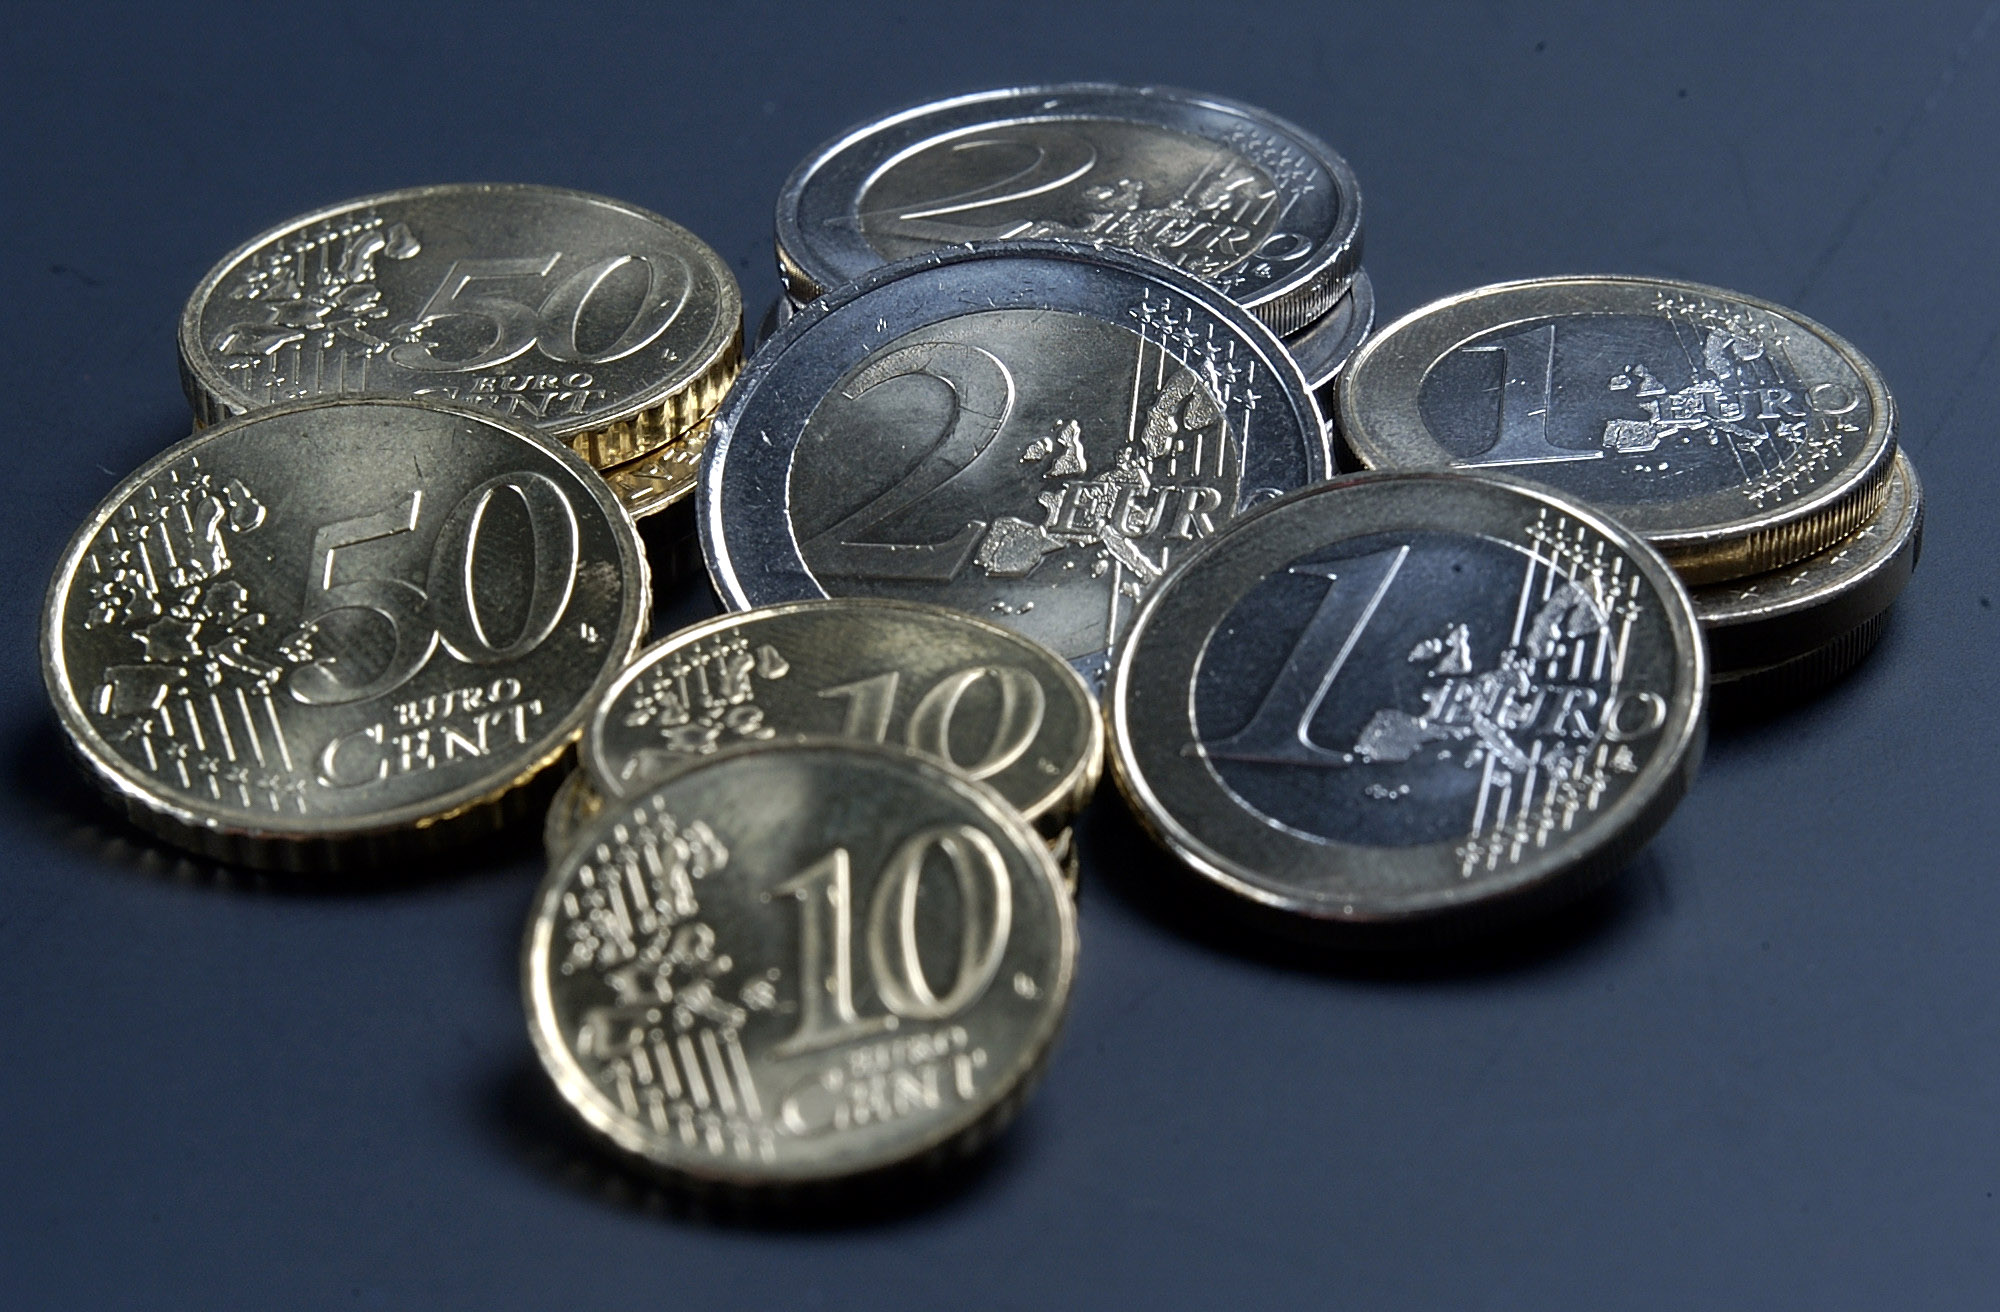 geld, money, munt, coin, euro, contant, cash, betaalmiddel, metaal, valuta